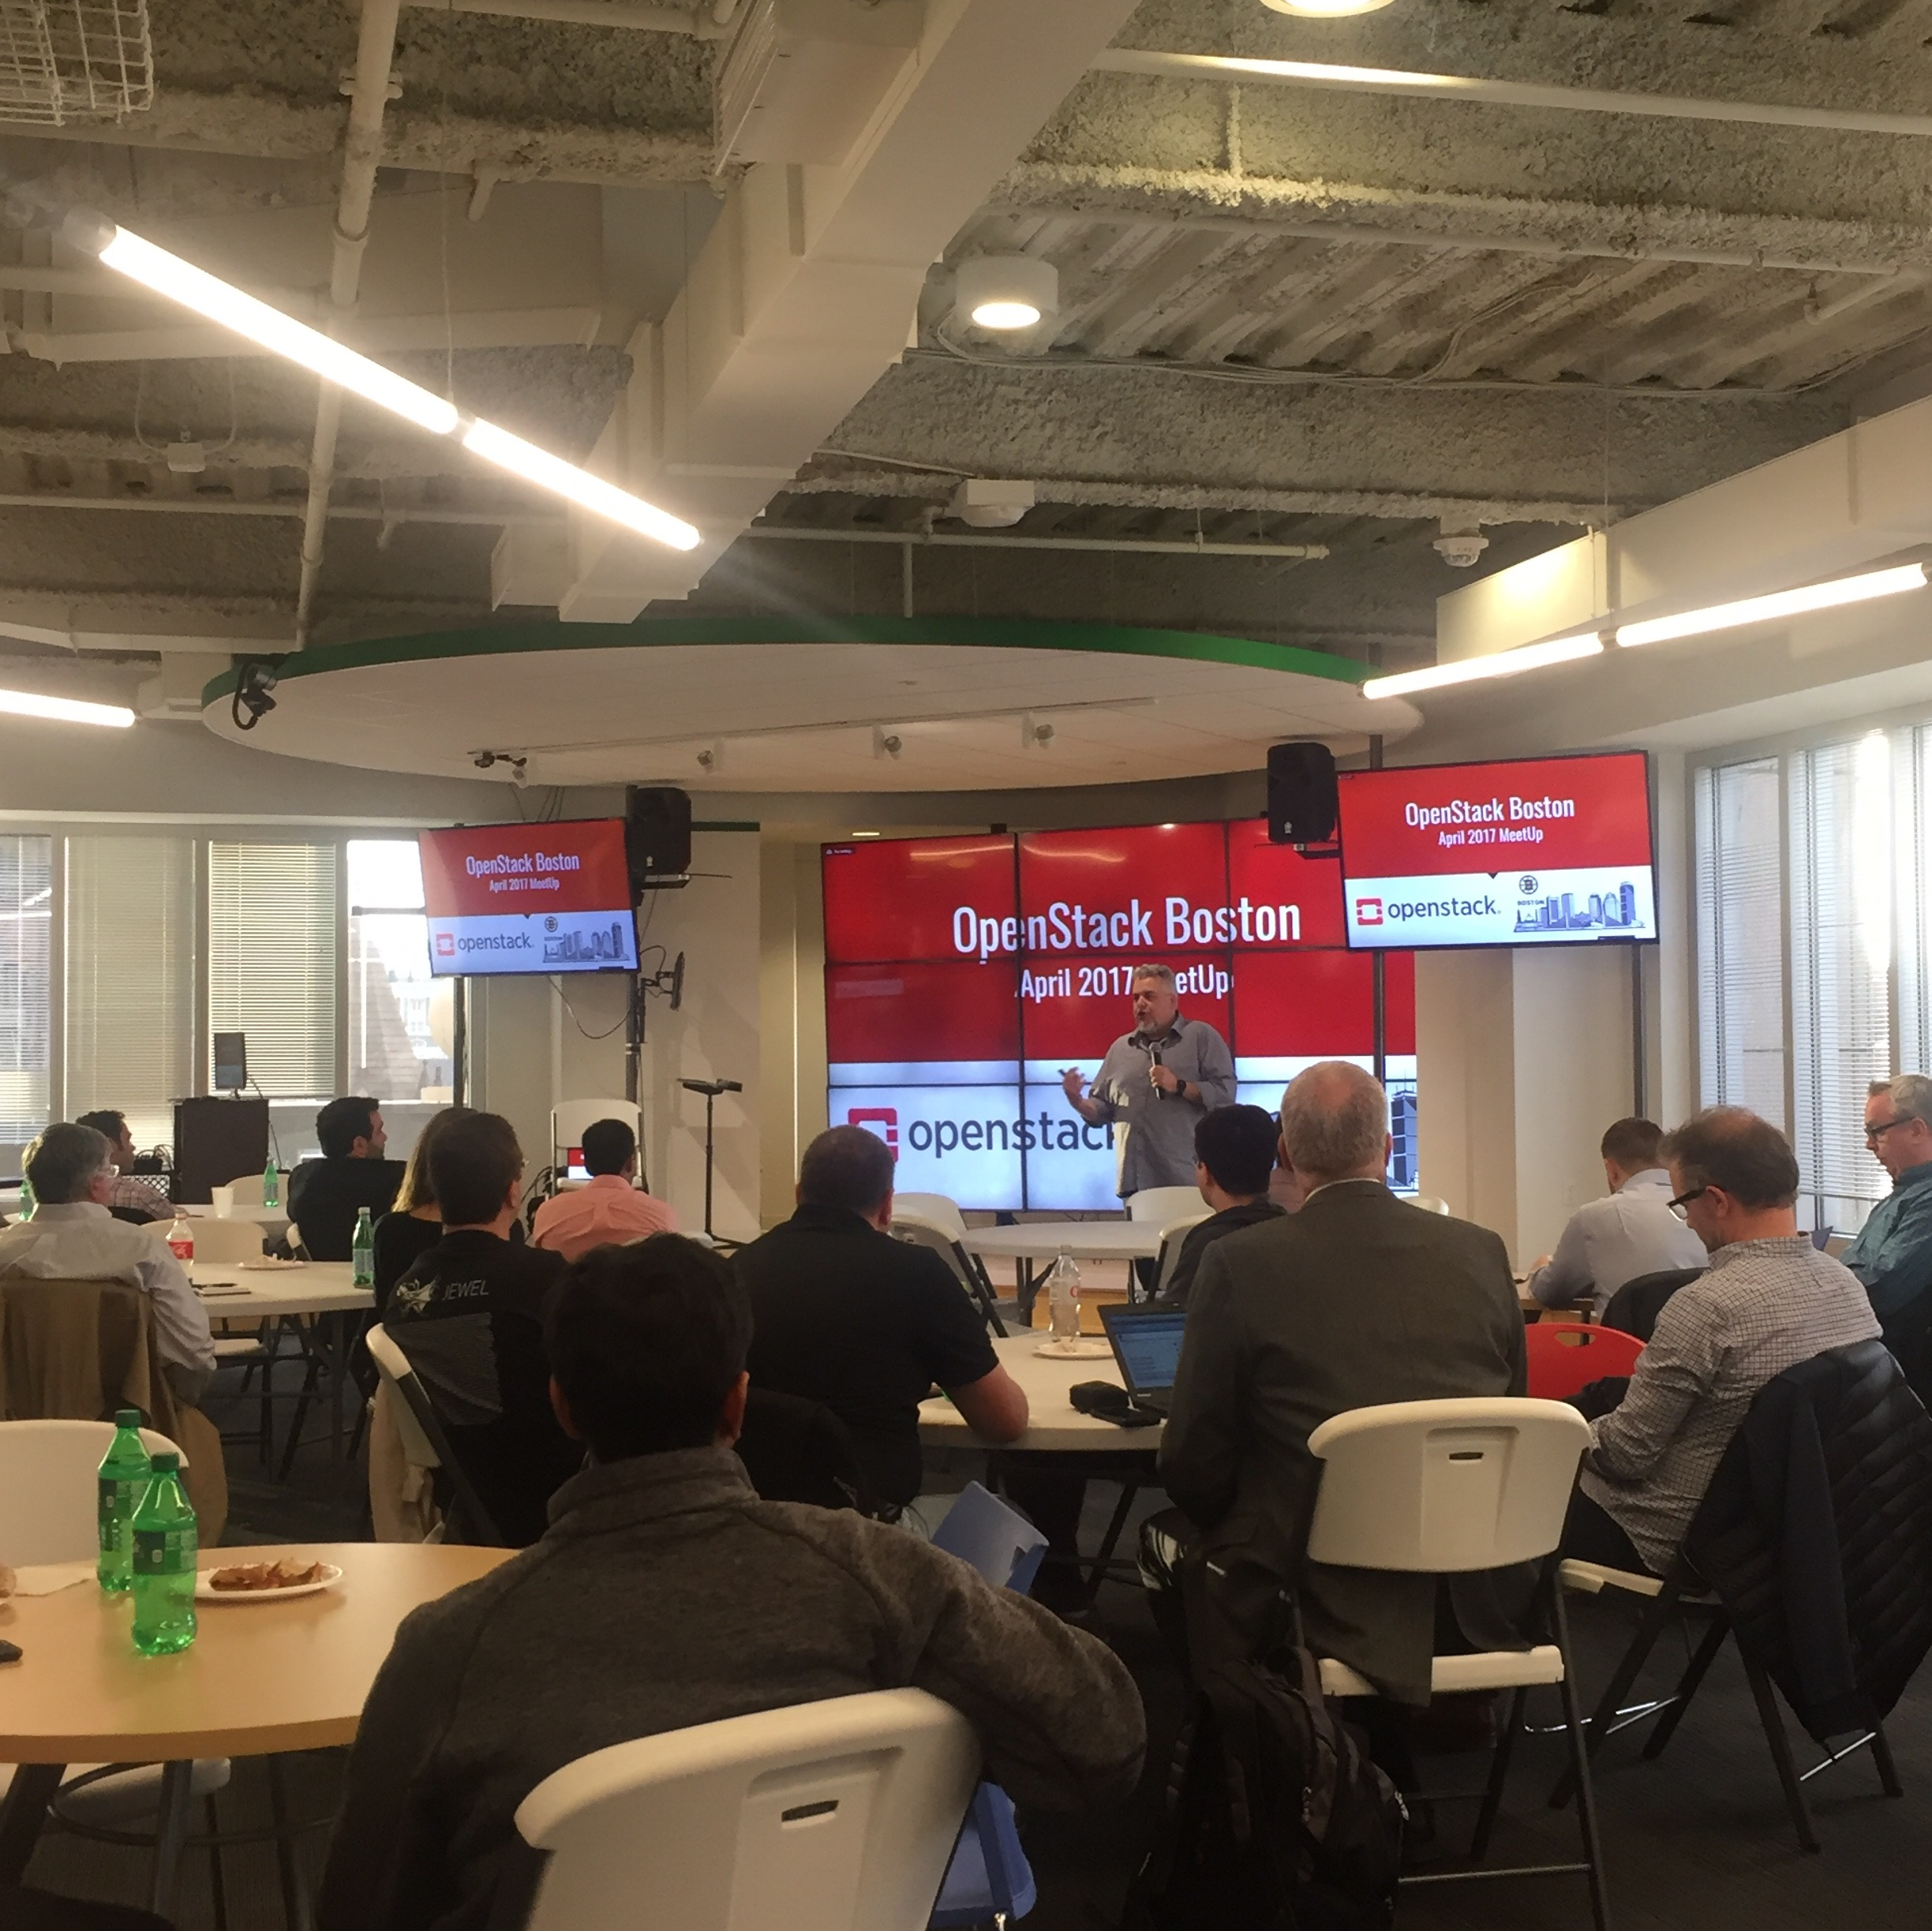 OpenStack Boston MeetUp